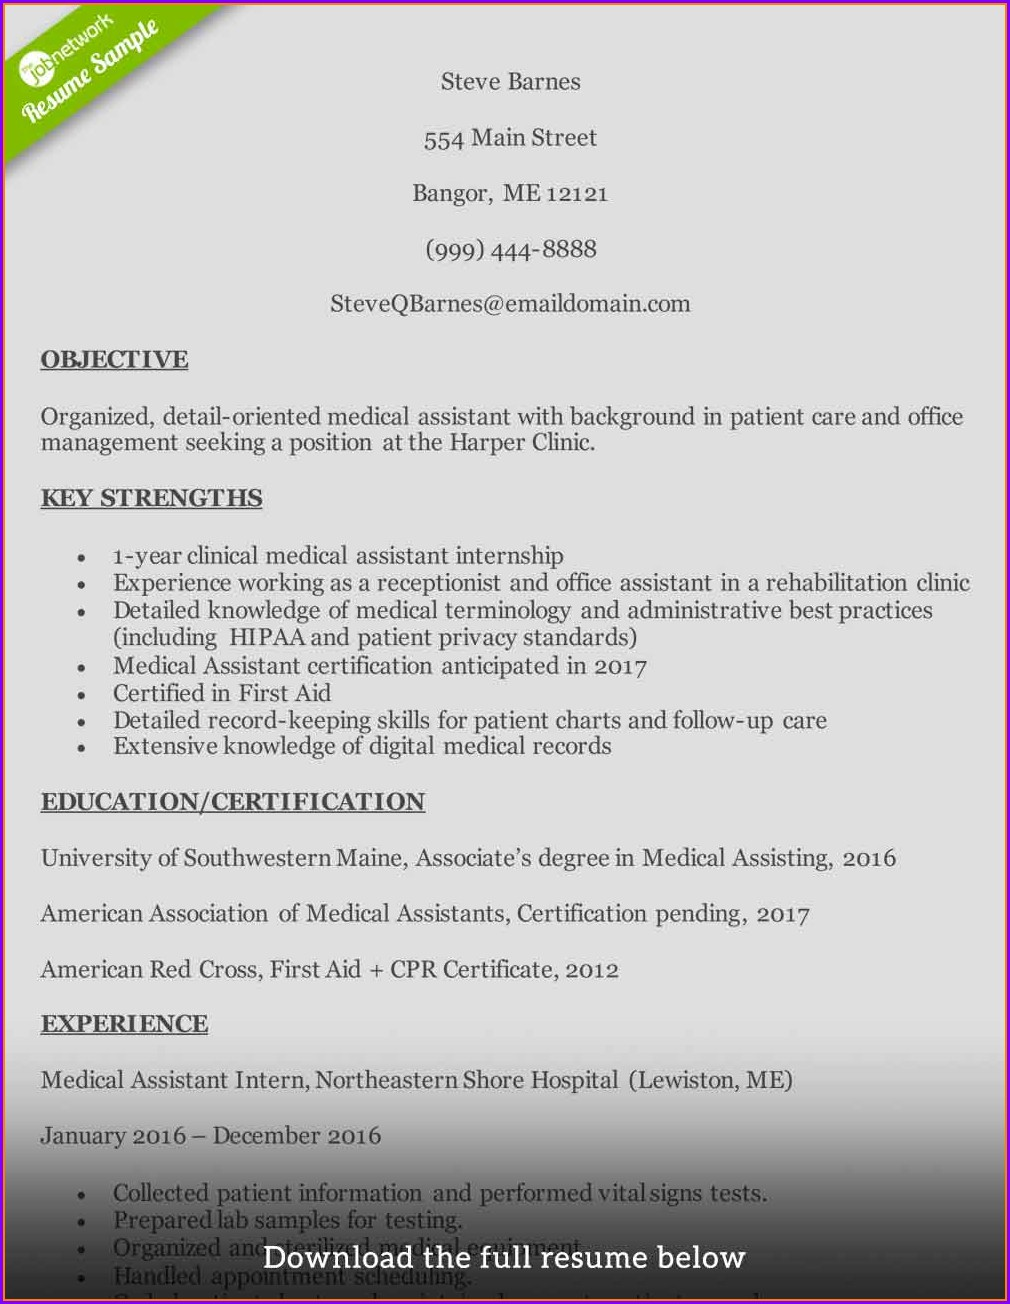 Medical Assistant Resumes Samples